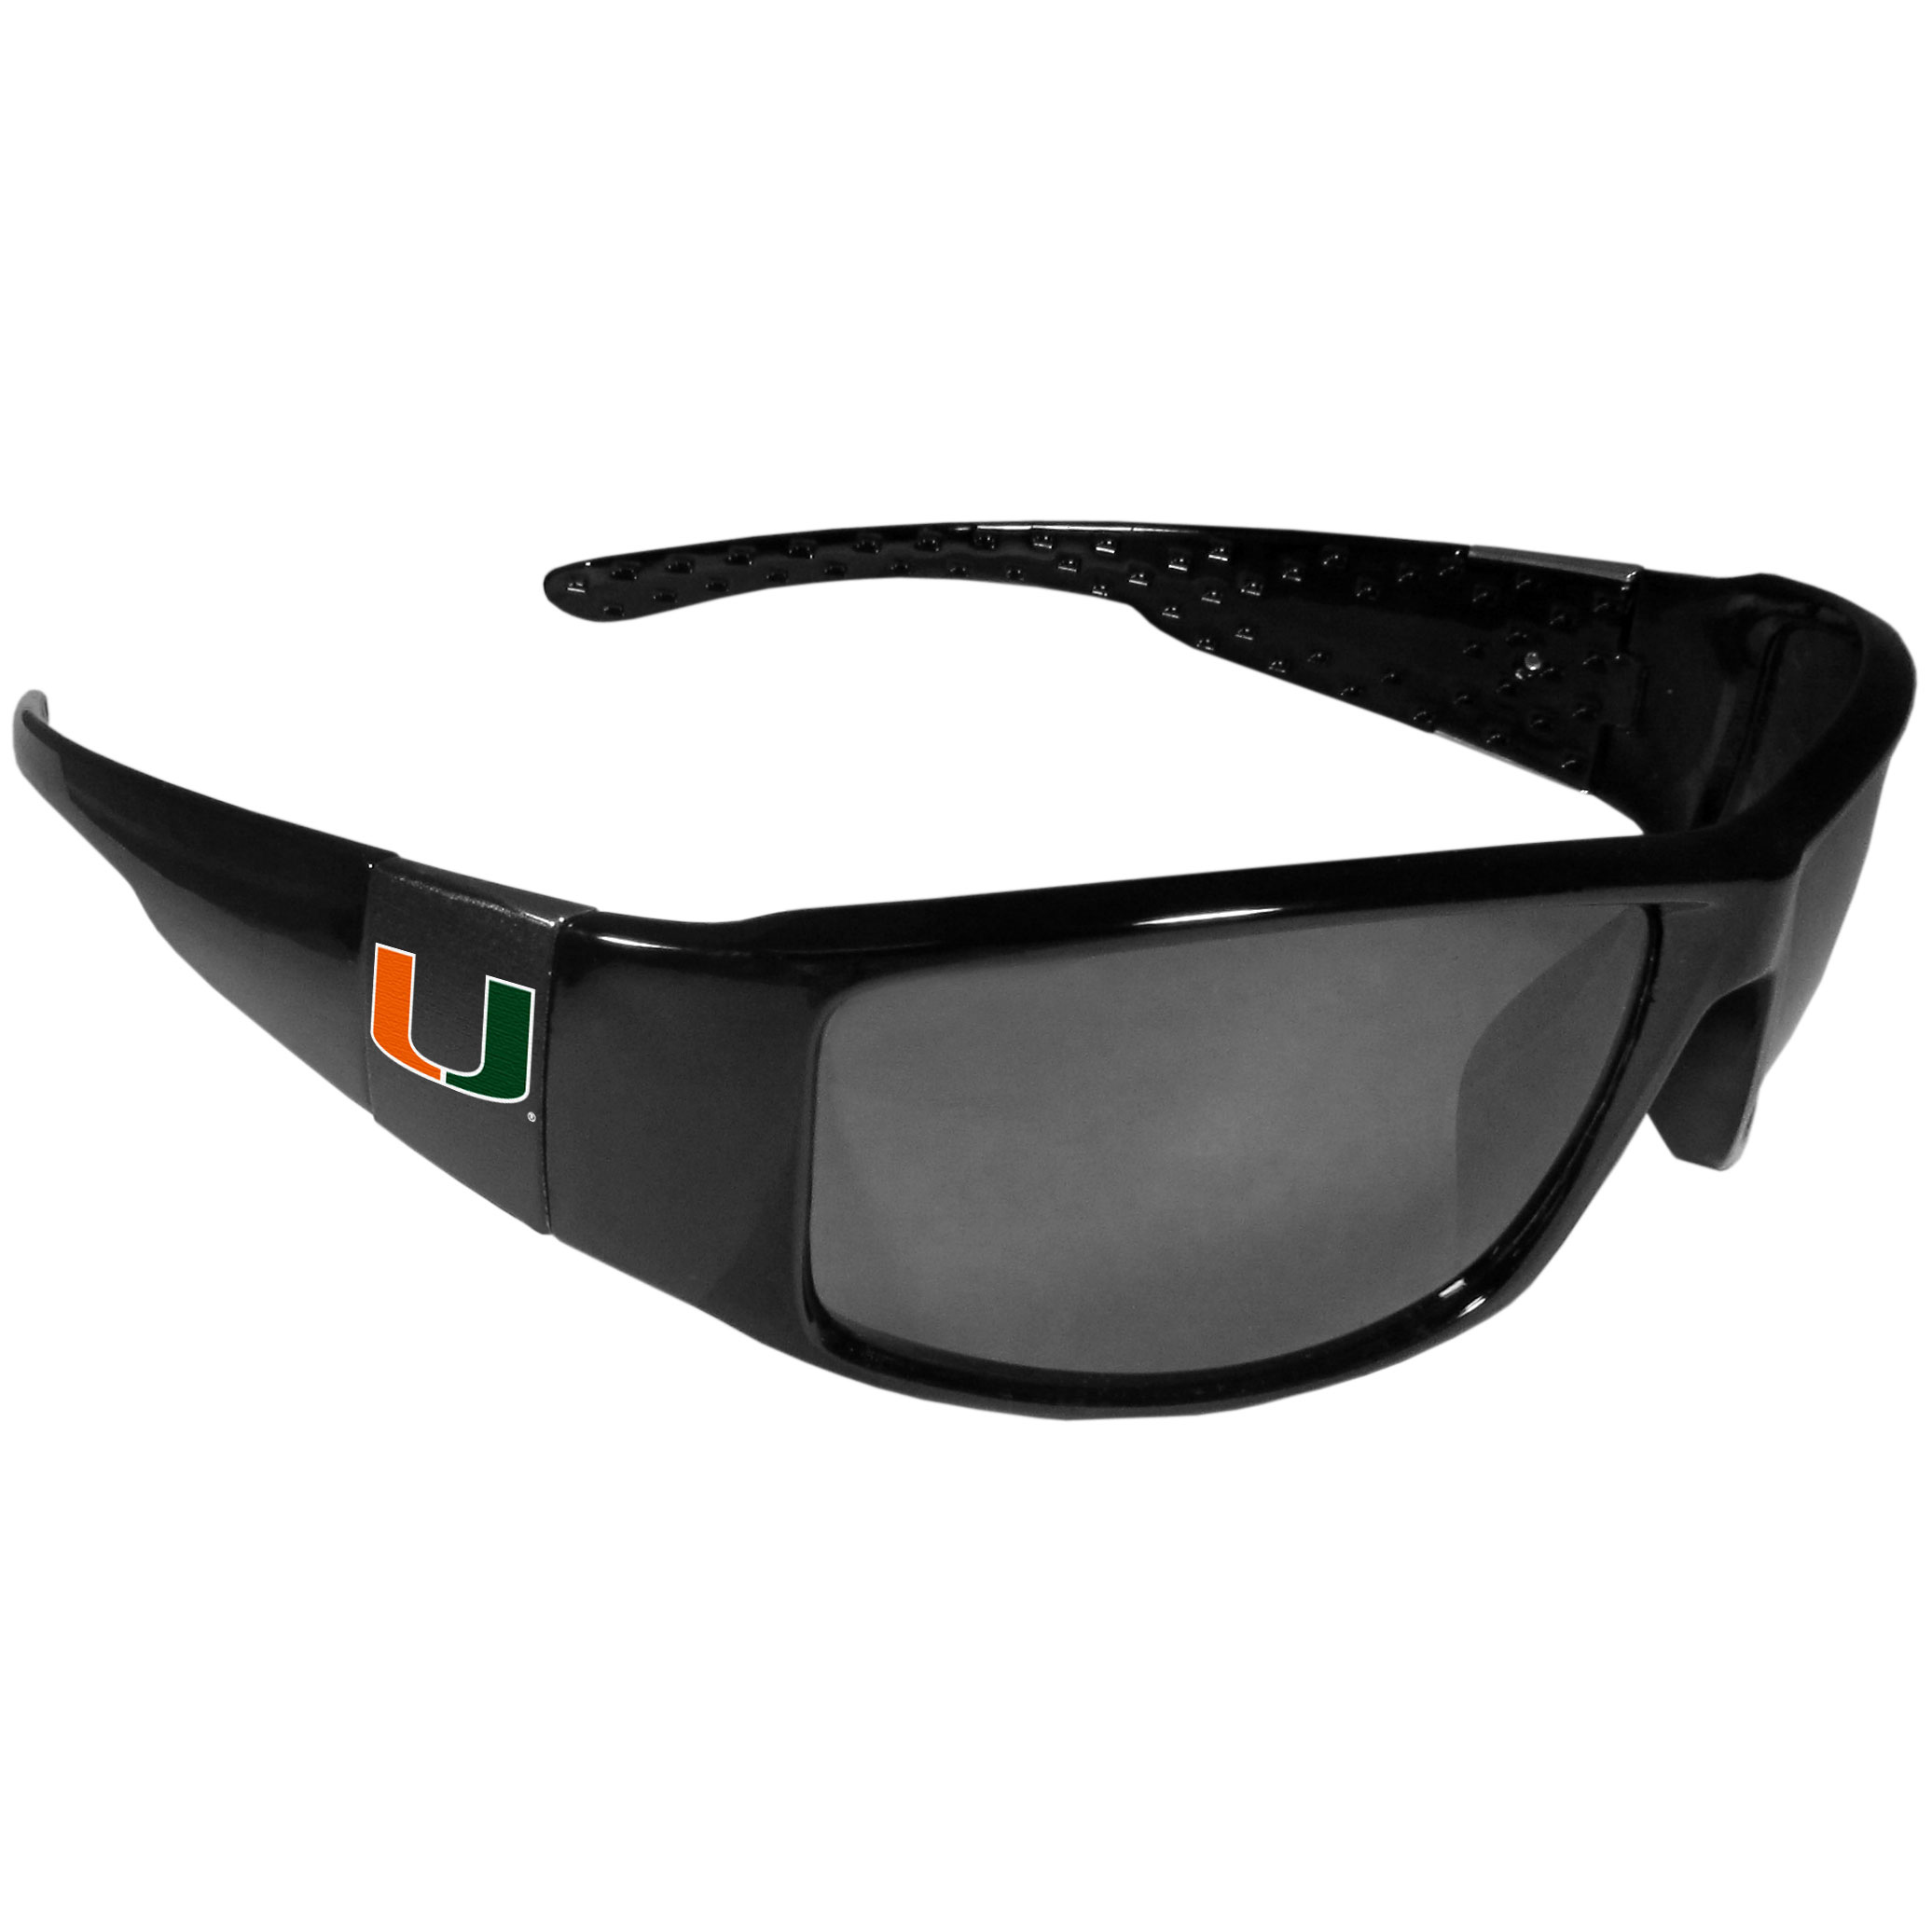 Miami Hurricanes Black Wrap Sunglasses - These designer inspired frames have a sleek look in all black with  Miami Hurricanes shields on each arm with a printed logo. The shades are perfect for any outdoor activity like; golfing, driving, hiking, fishing or cheering on the team at a tailgating event or at a home game day BBQ with a lens rating of 100% UVA/UVB for maximum UV protection. The high-quality frames are as durable as they are fashionable and with their classic look they are the perfect fan accessory that can be worn everyday for every occasion.